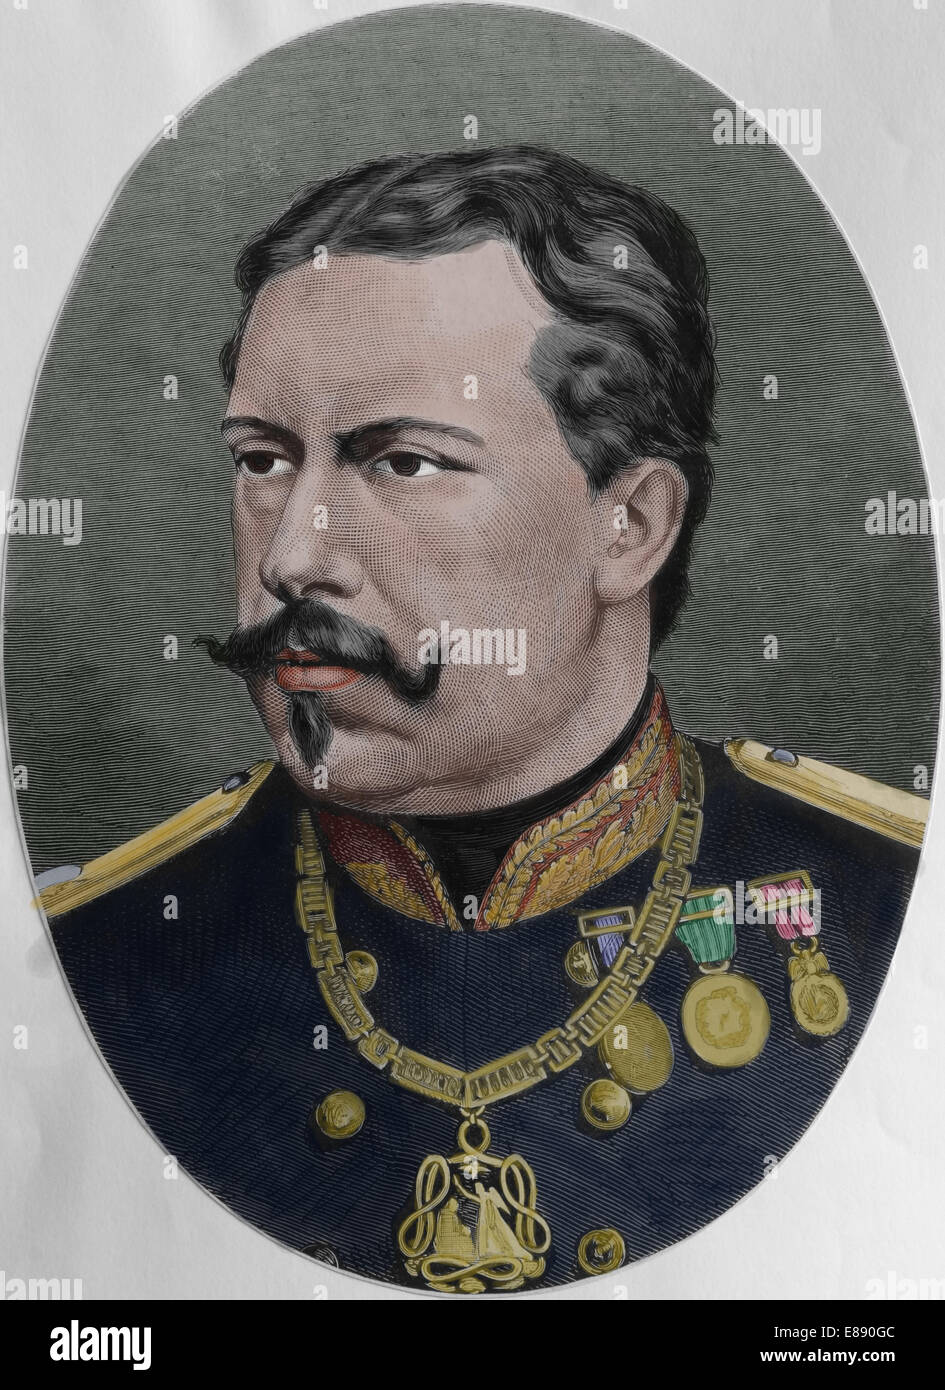 Louis I (1838-1889). King of Portugal between 1861-1889. Engraving, 1879. Color. - Stock Image